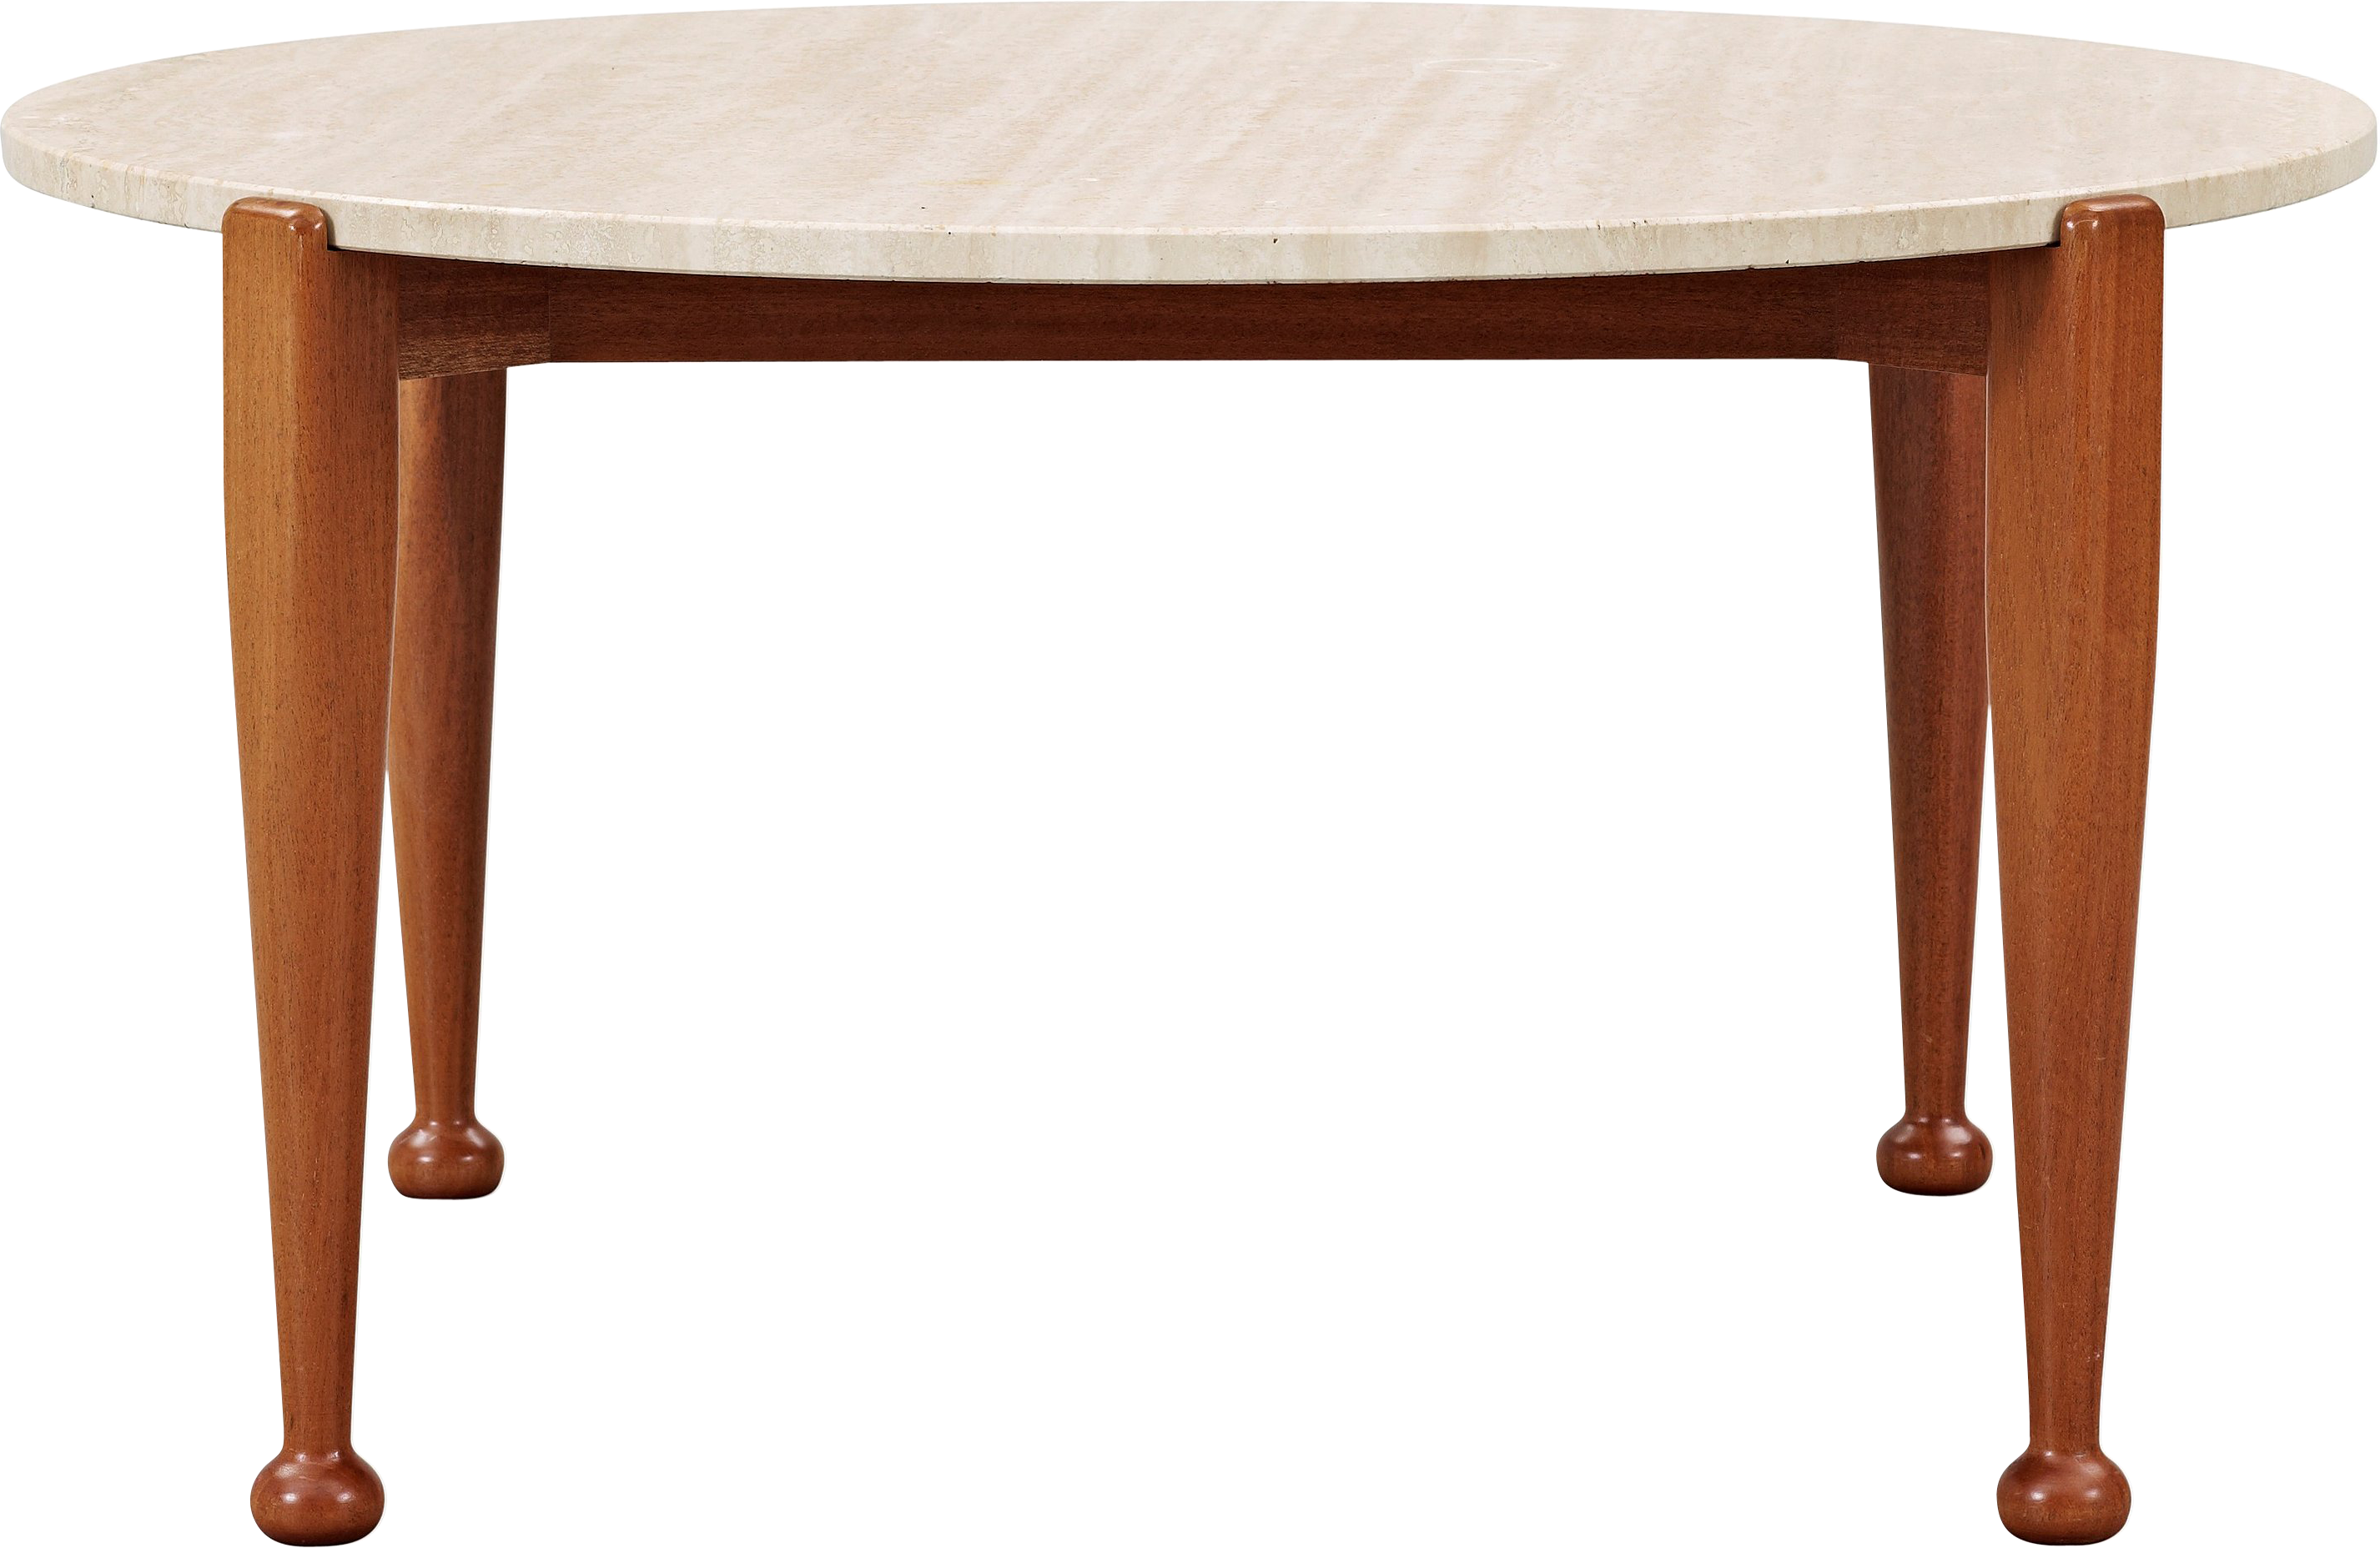 Table clipart transparent background picture transparent Table png transparent #31923 - Free Icons and PNG Backgrounds picture transparent